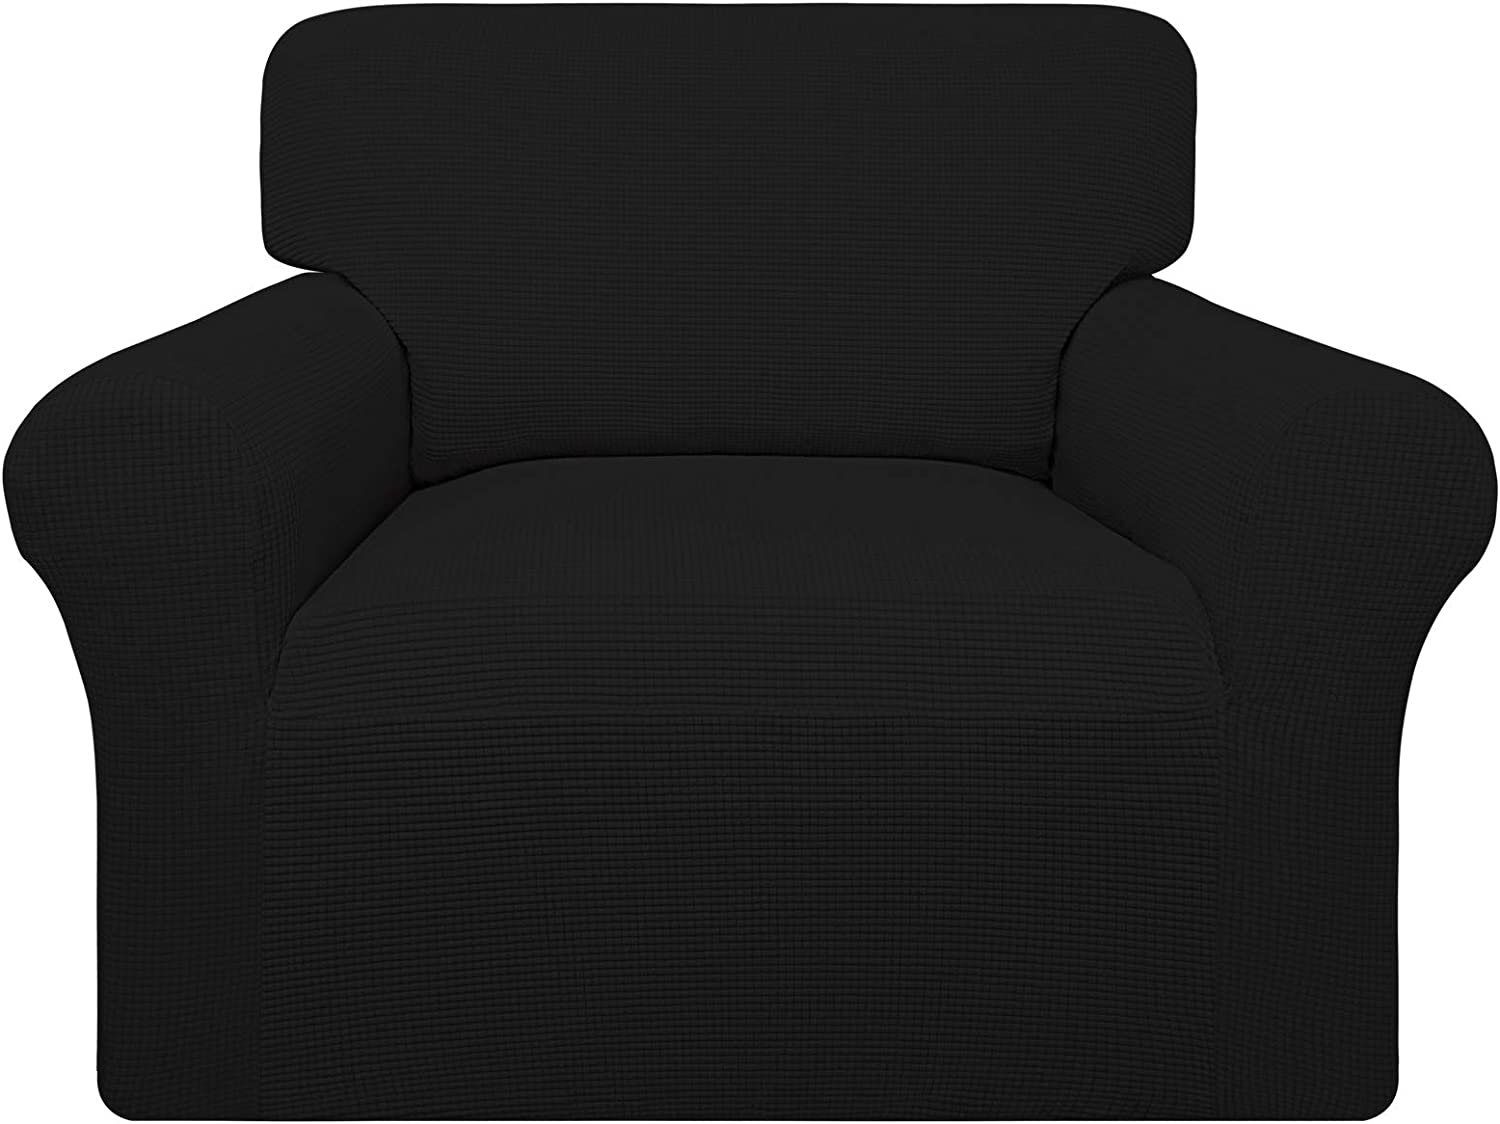 Easy-Going 100% Waterproof Chair Couch Cover, Dual Waterproof Sofa Cover, Stretch Jacquard Sofa Slipcover, Leakproof Furniture Protector for Kids, Pets, Dog and Cat (Chair, Black)